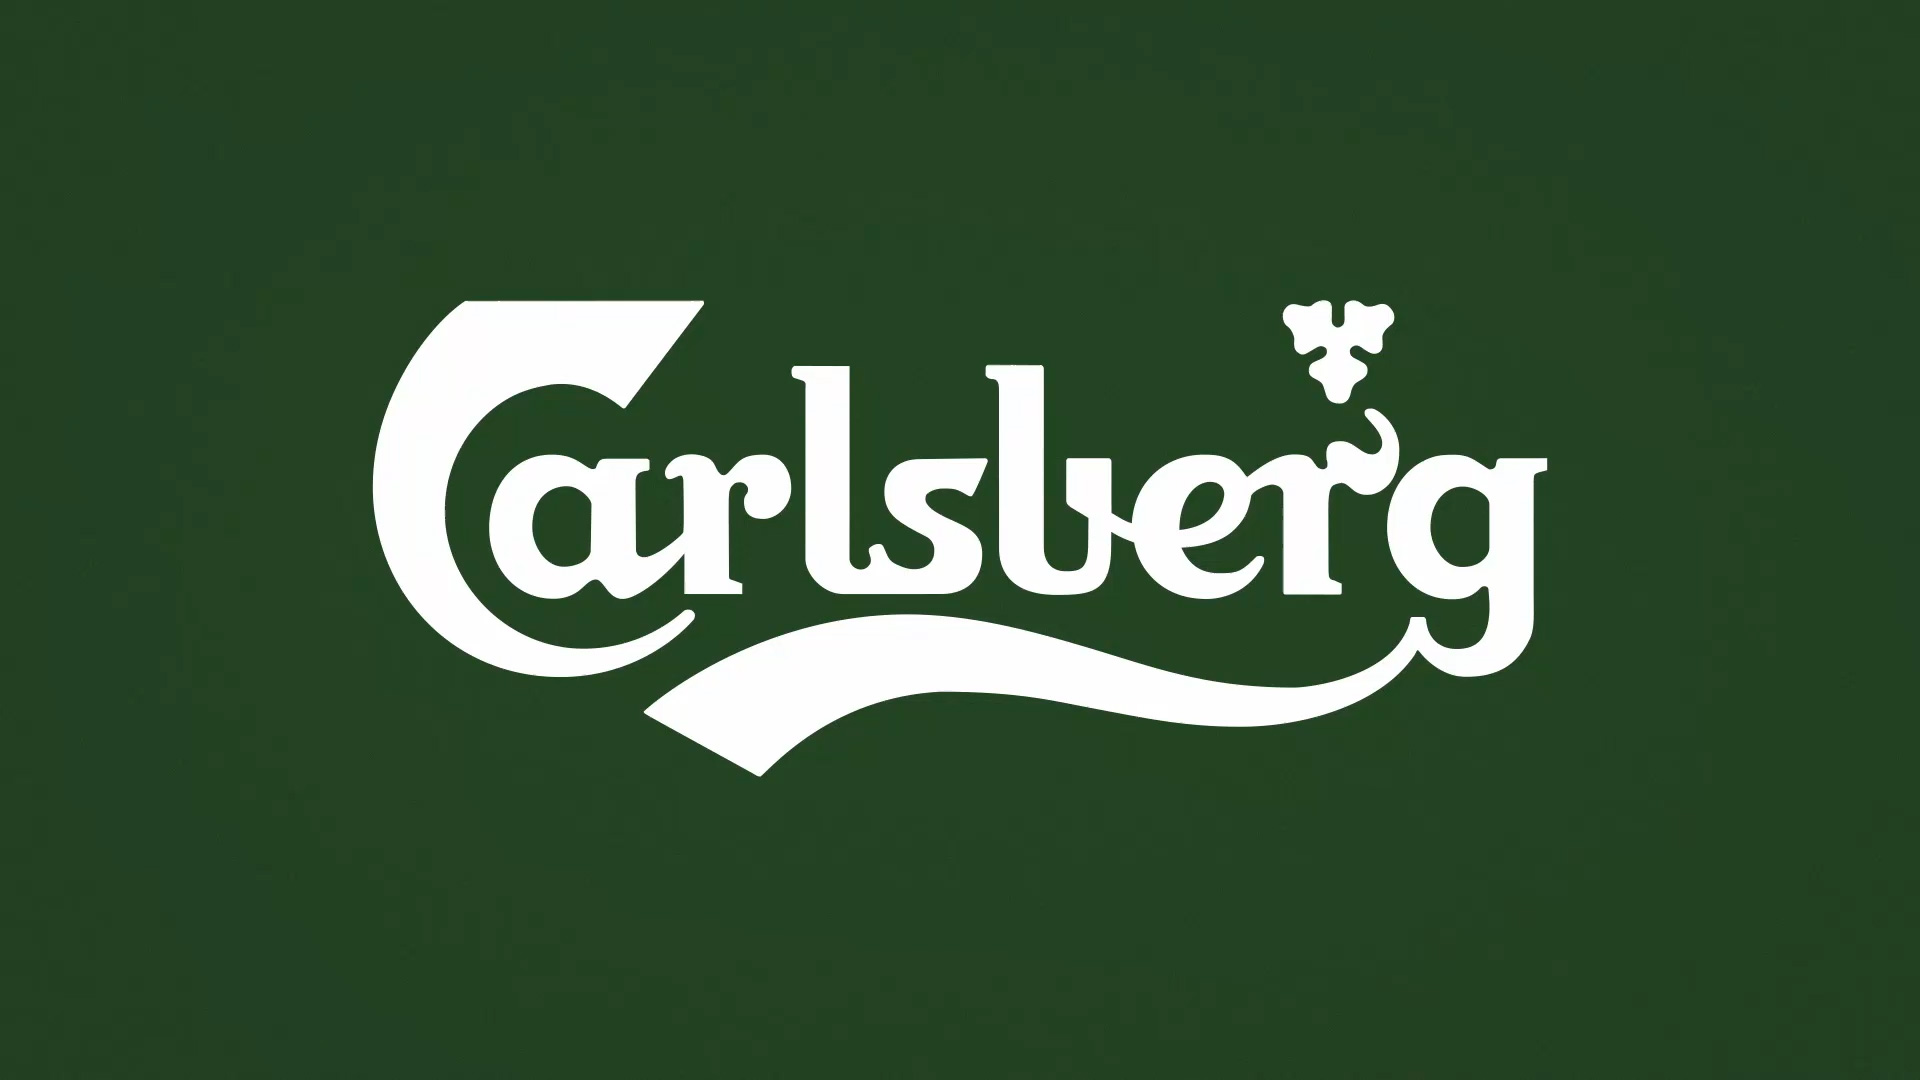 Brand New: New Logo And Packaging For Carlsberg By Taxi Studio - Carlsberg Logo PNG